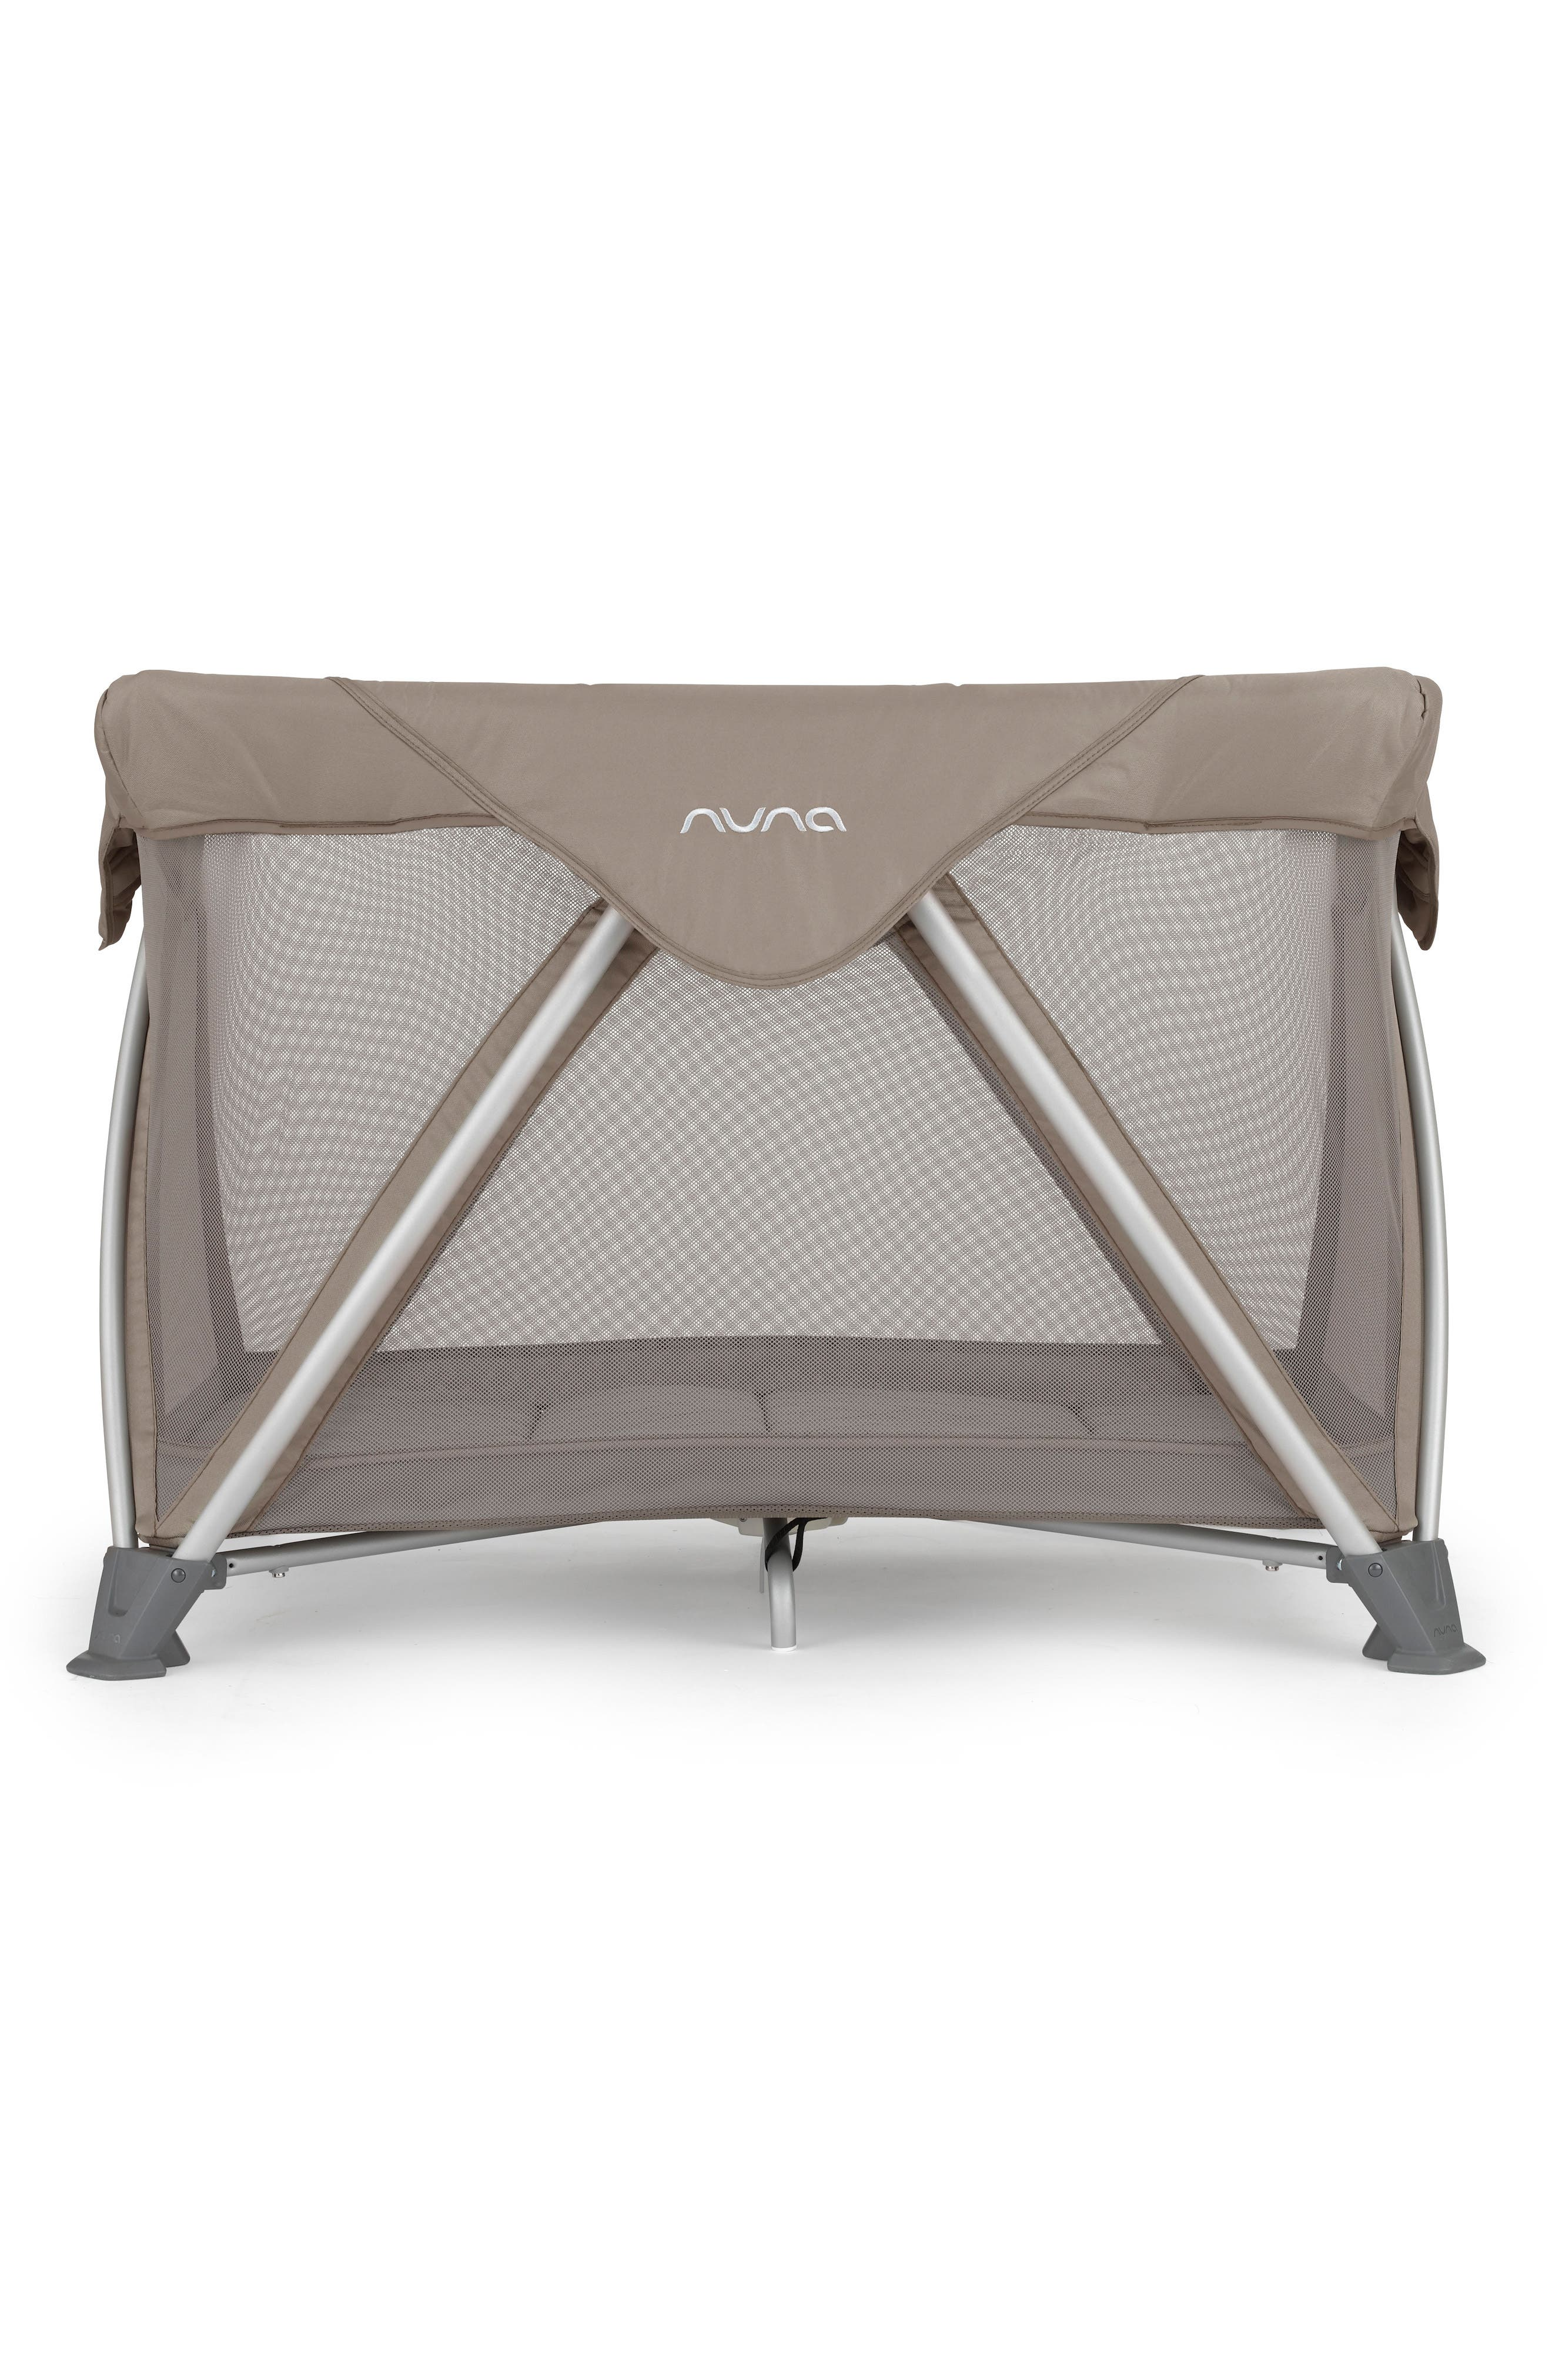 Main Image - nuna SENA™ Aire Travel Crib